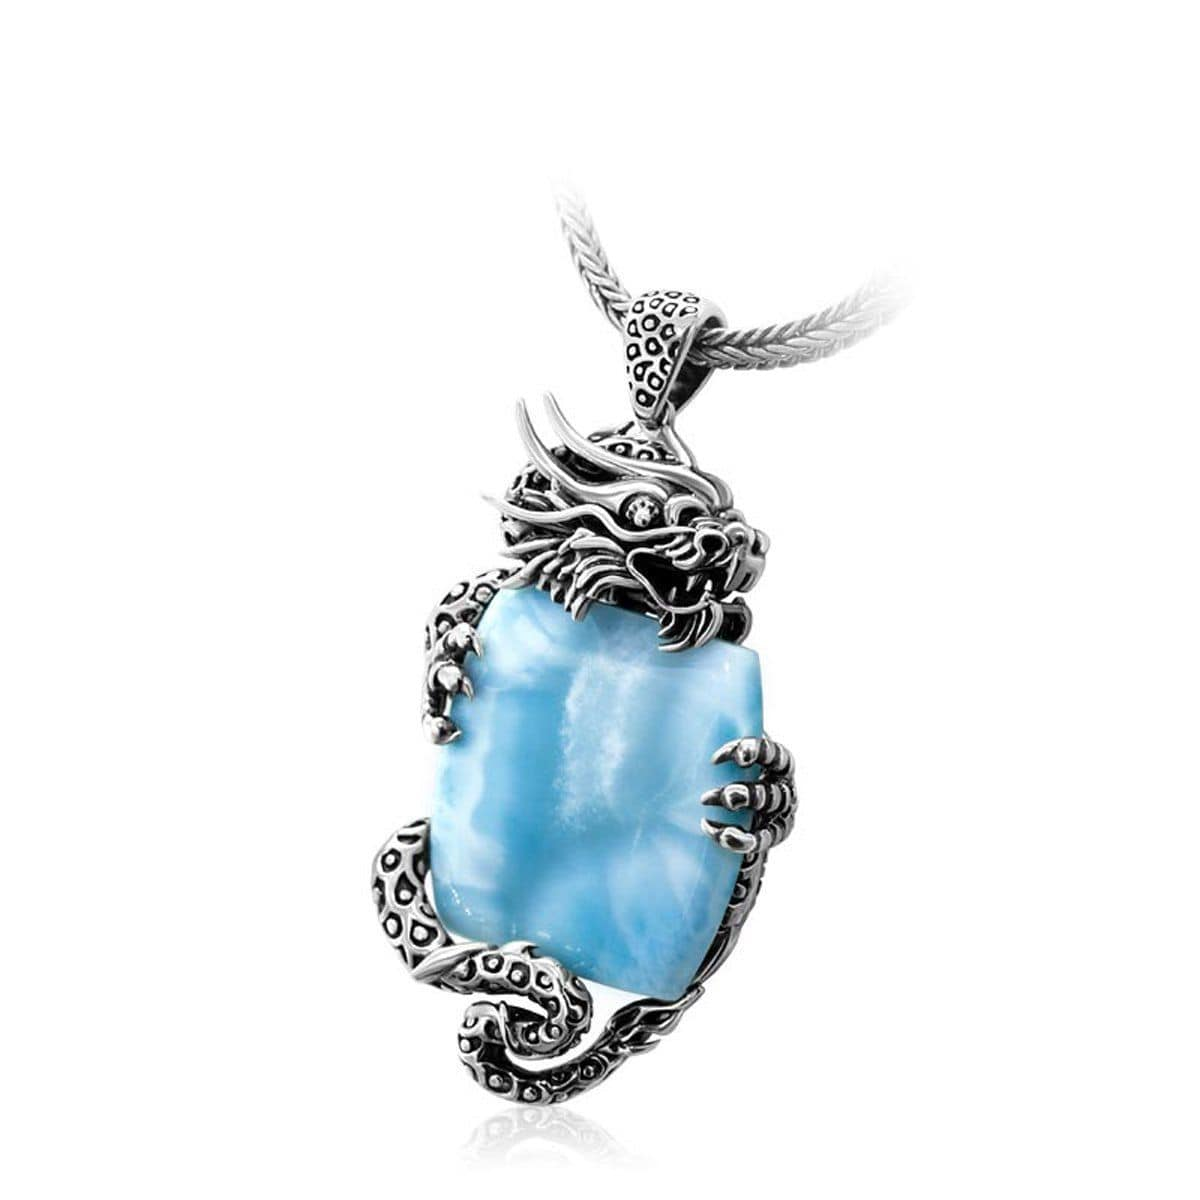 Dragon Necklace - Ndrgn00-00-Marahlago Larimar-Renee Taylor Gallery